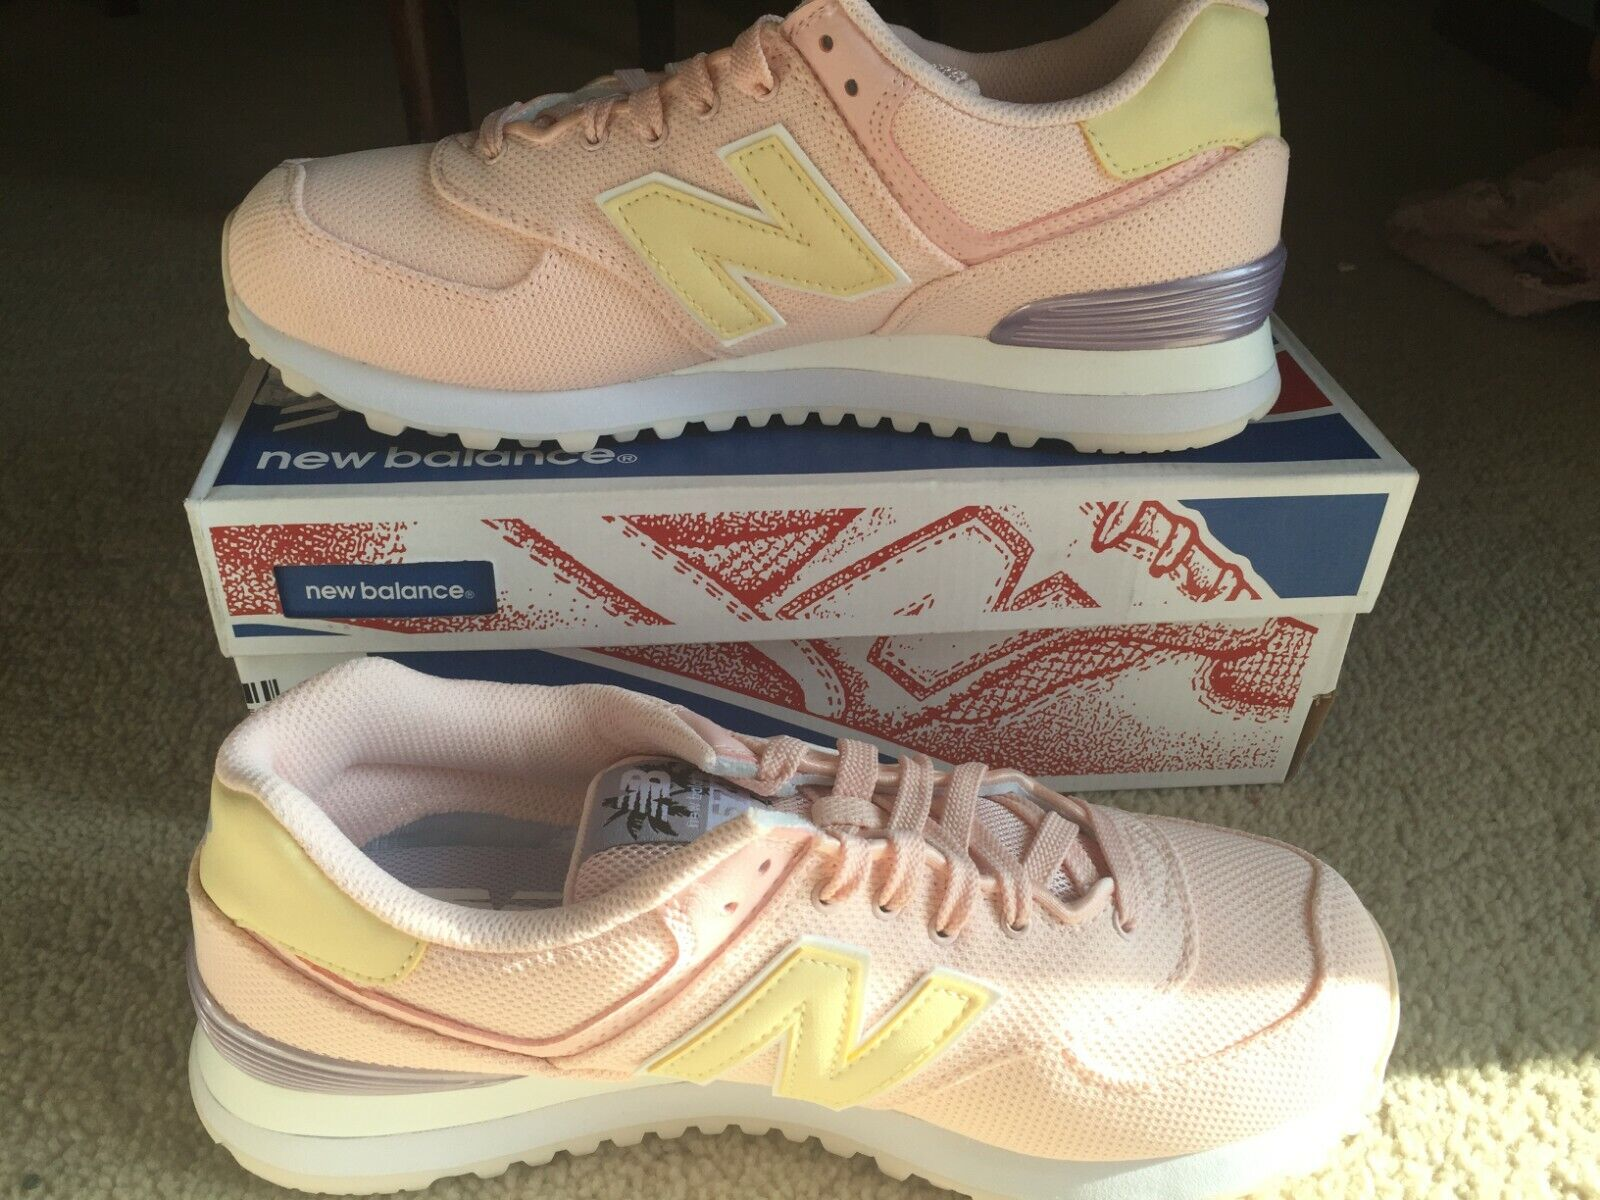 Womens Sneakers New Balance Coral and Yellow Size 8.5 M New